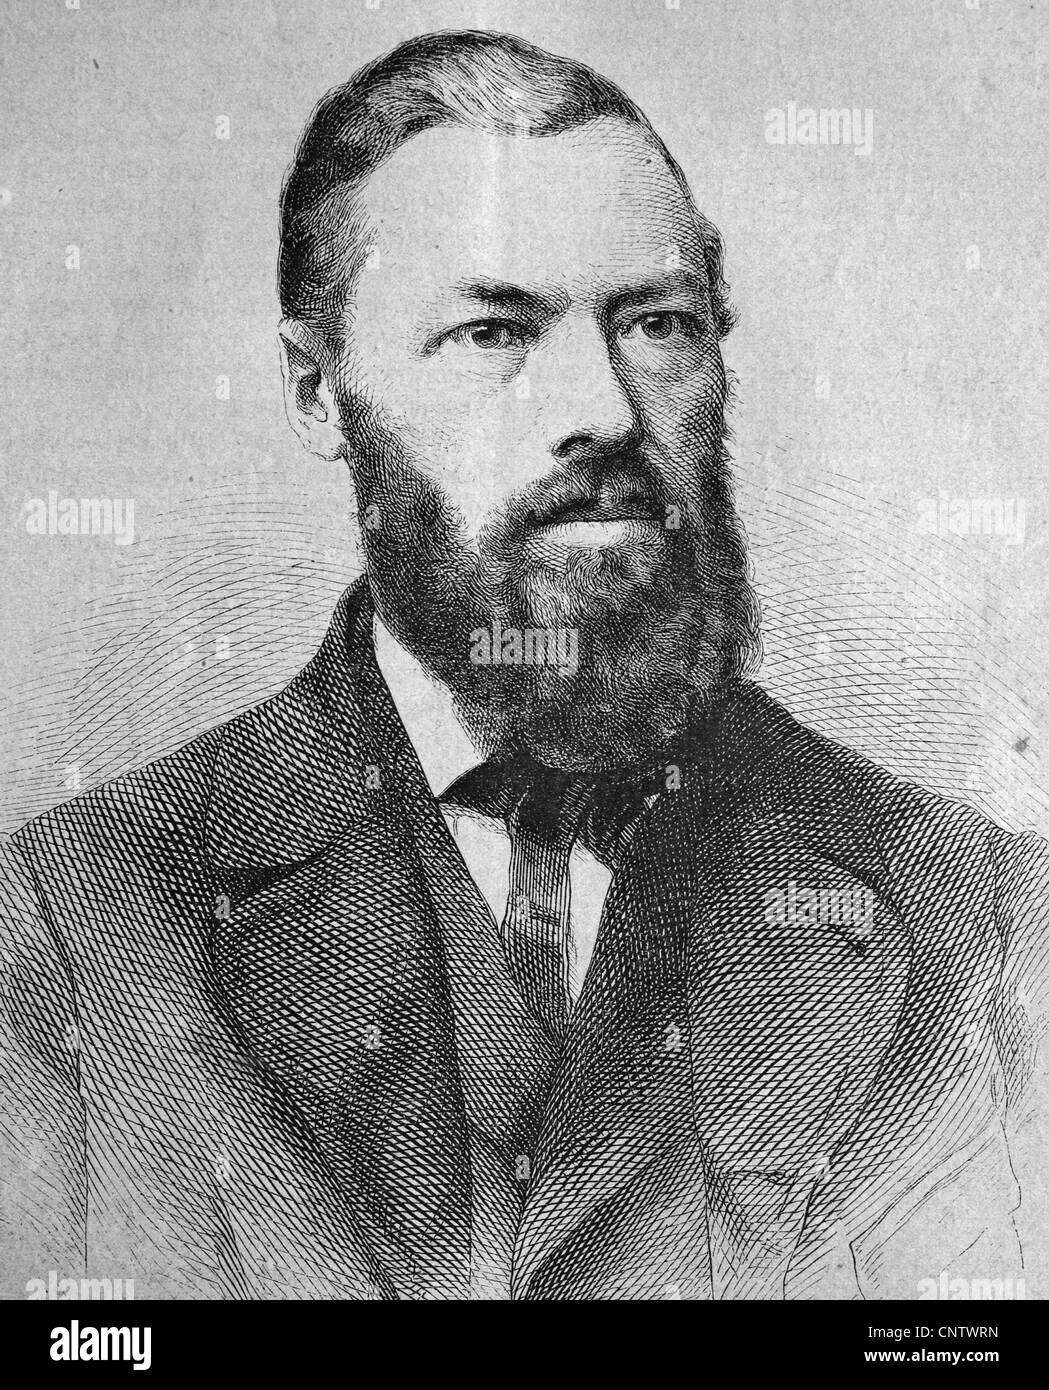 Johannes Scherr, 1817-1886, a German art historian and writer, historical engraving, circa 1869 - Stock Image